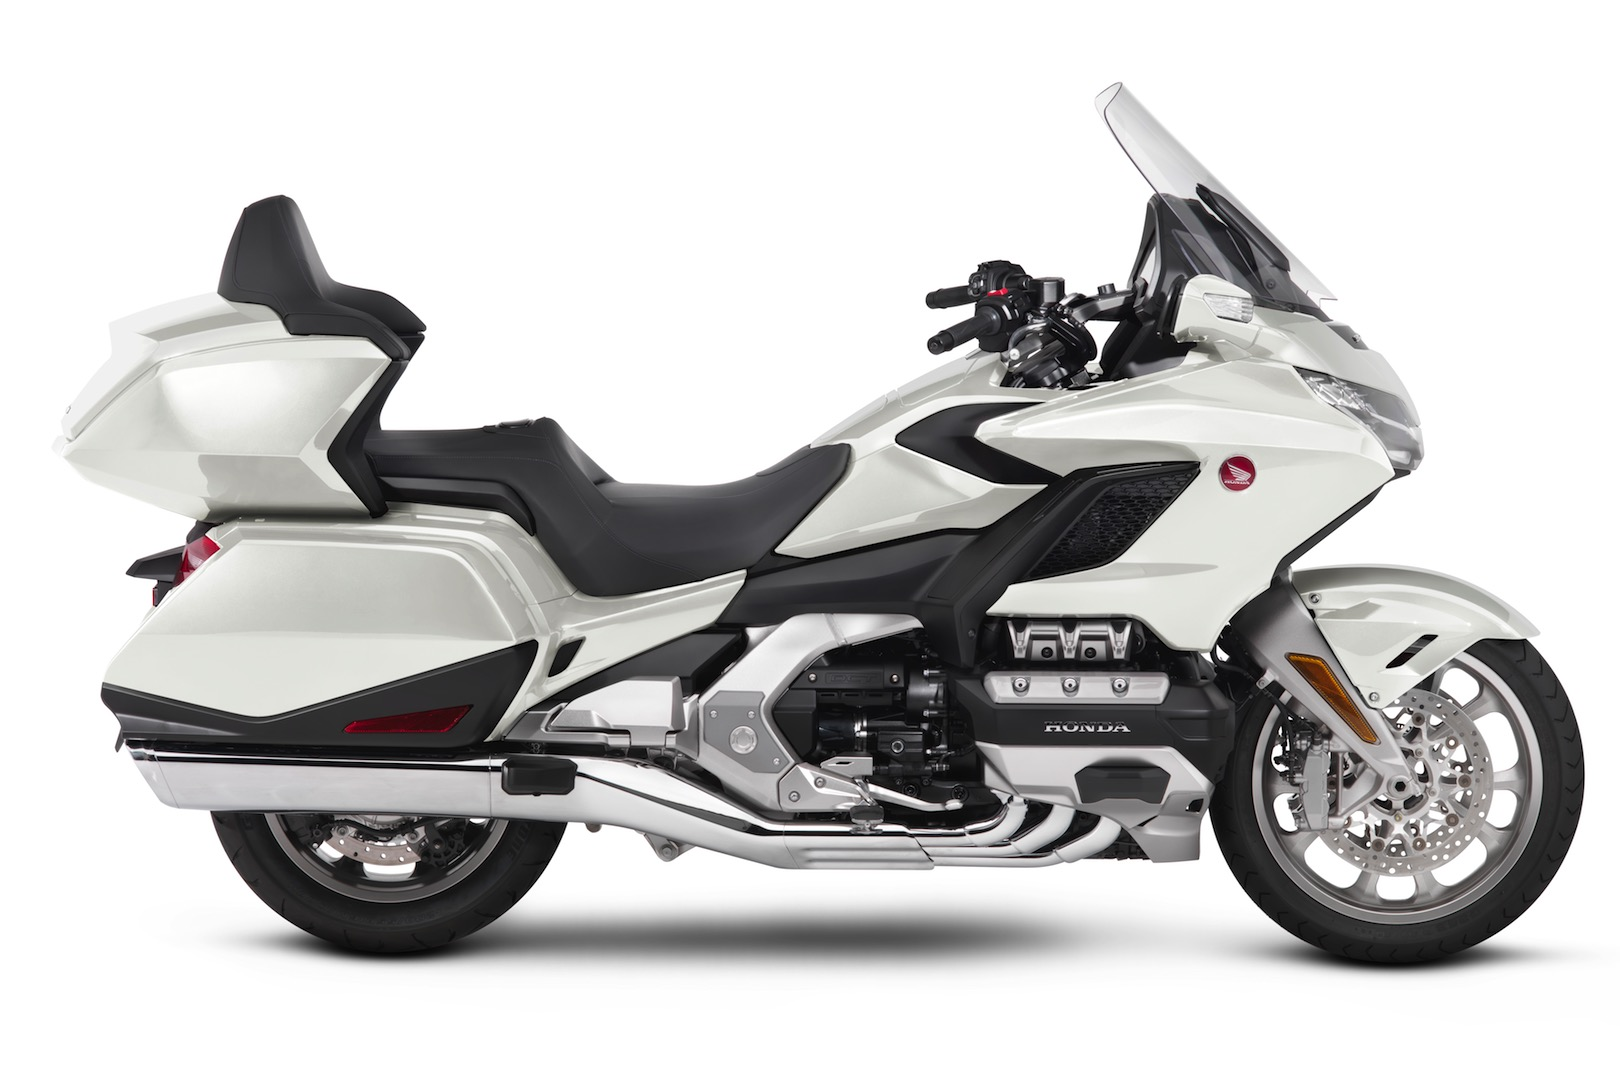 2018 Honda Gold Wing white